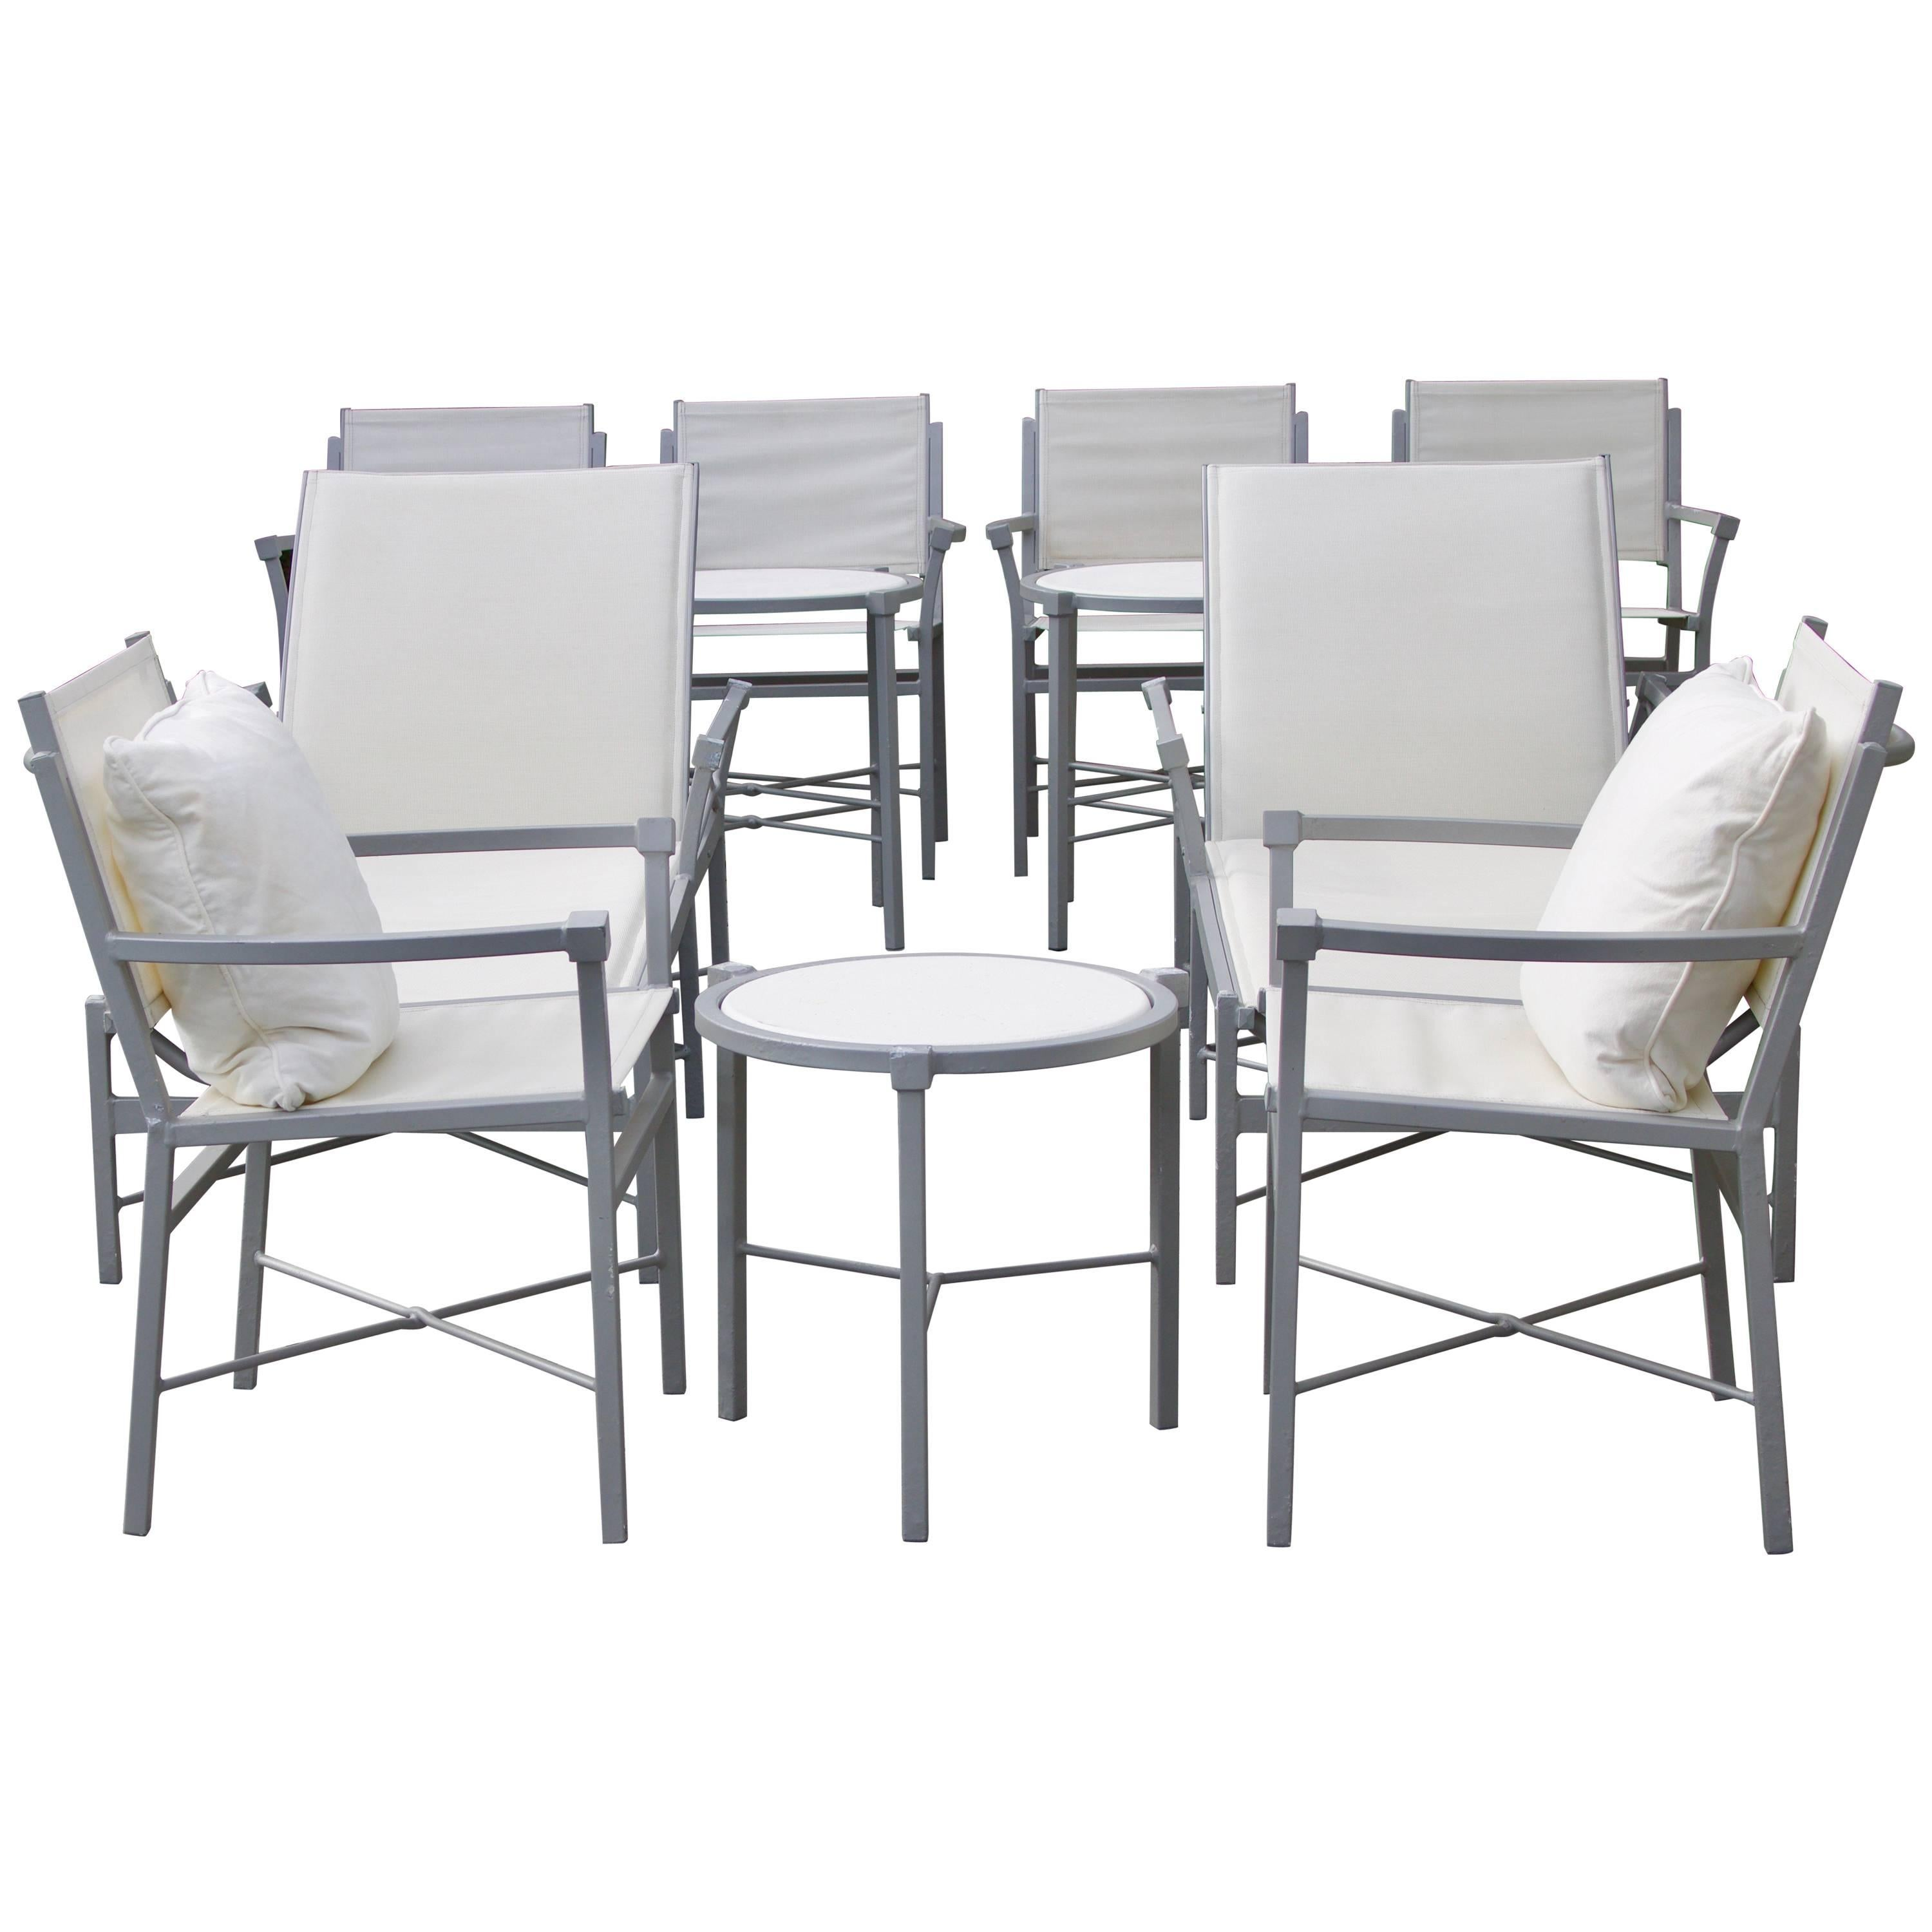 Set Of 11 Pieces Outdoor Pavillion Garden Furniture, Chic Design Gray And  White 1